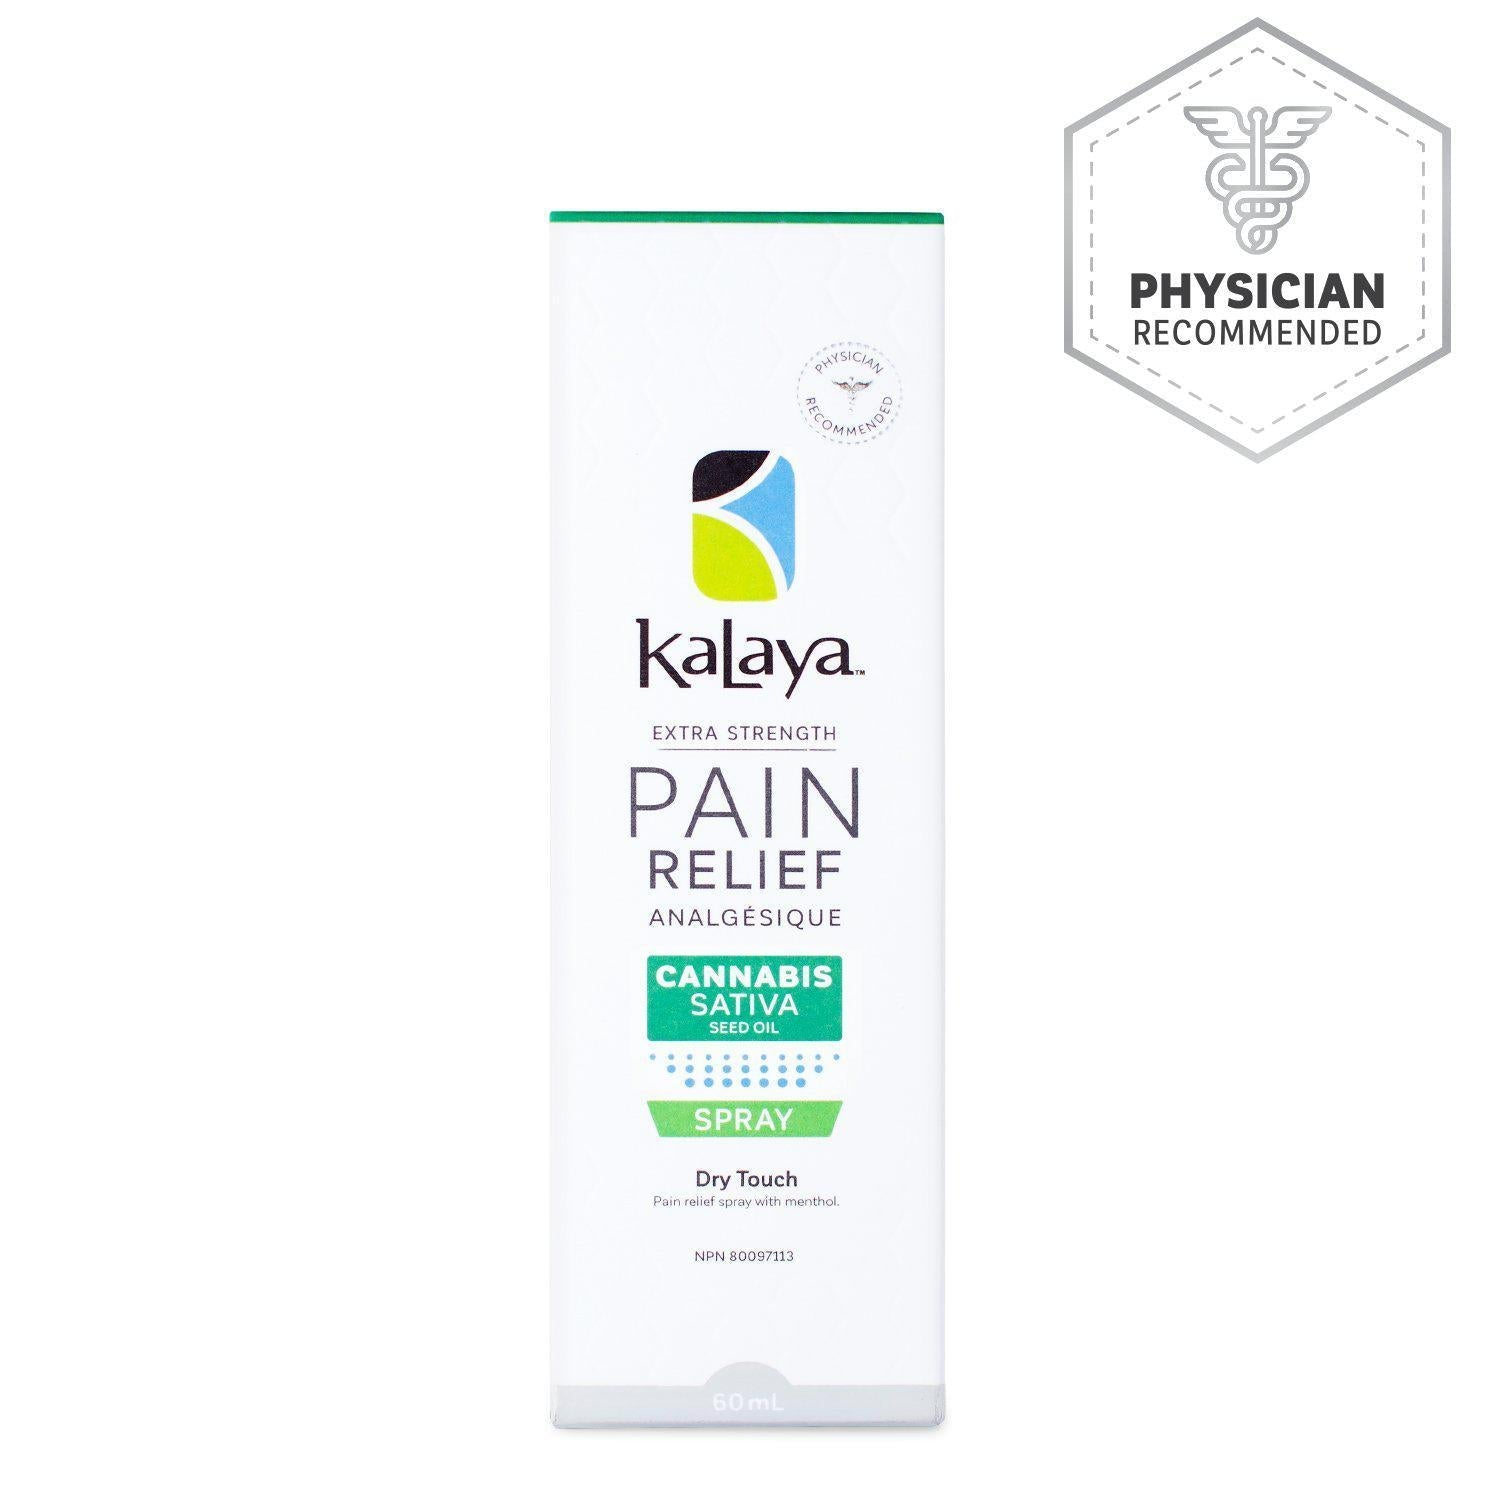 Kalaya Pain Relief Spray with Cannabis Sativa Seed Oil 60mL - Physician Recommended